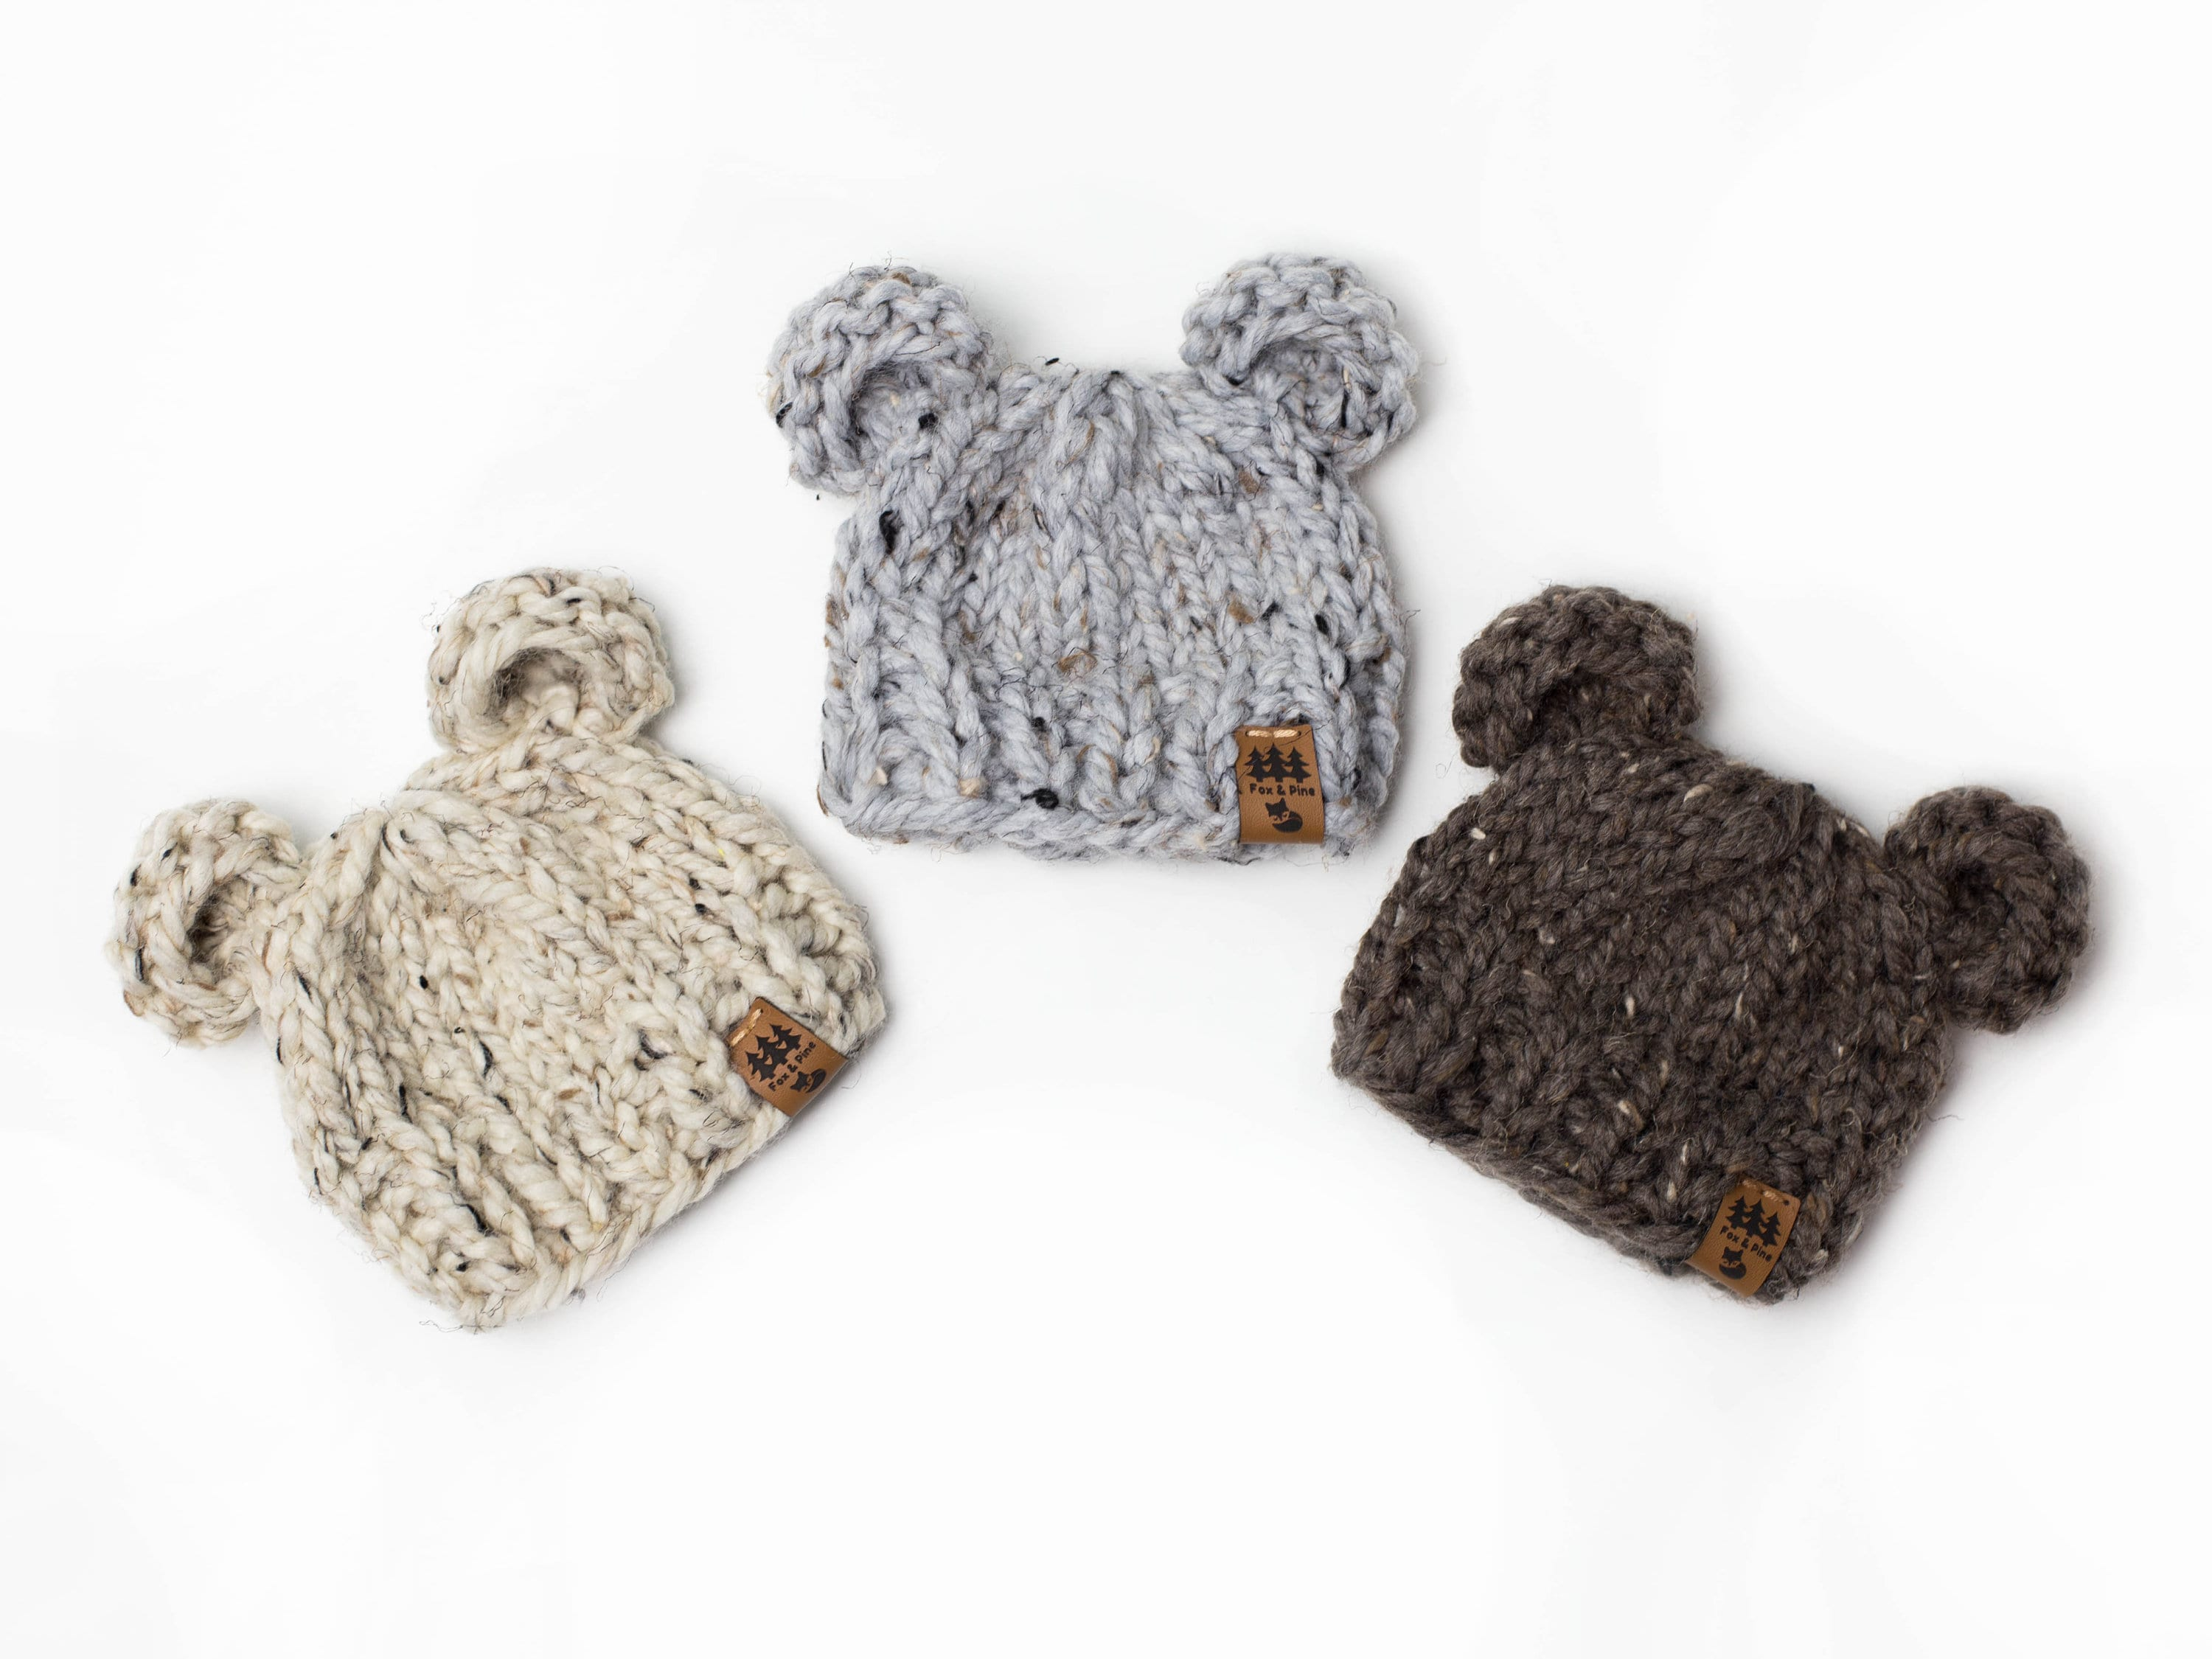 bf5e1af8d Bear Ears Hat - Chunky Knit Photo Prop - Newborn, Baby, Child - Wooden  Button